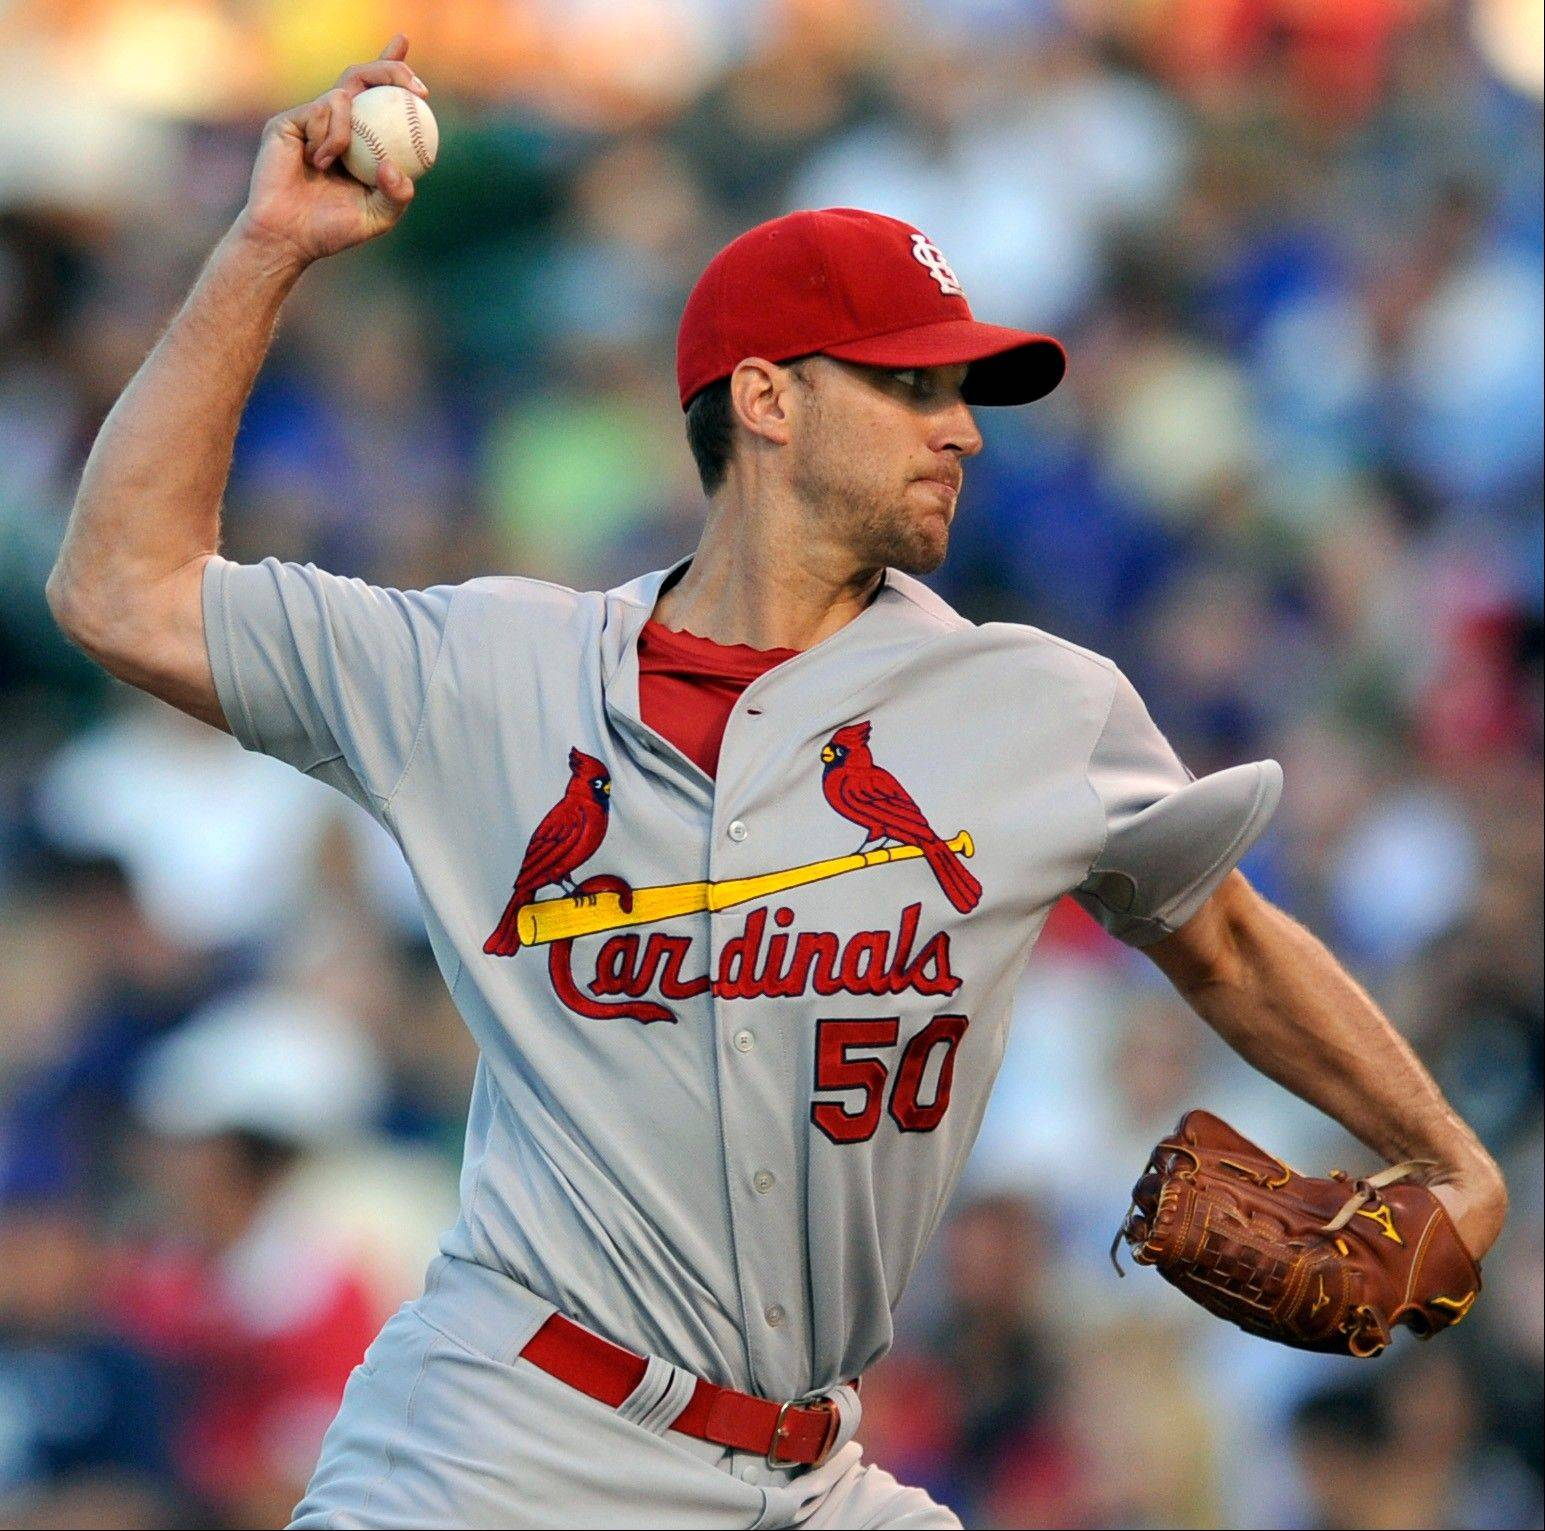 St. Louis Cardinals starter Adam Wainwright delivers a pitch during the first inning of a baseball game against the Chicago Cubs in Chicago, Sunday, July 14, 2013.